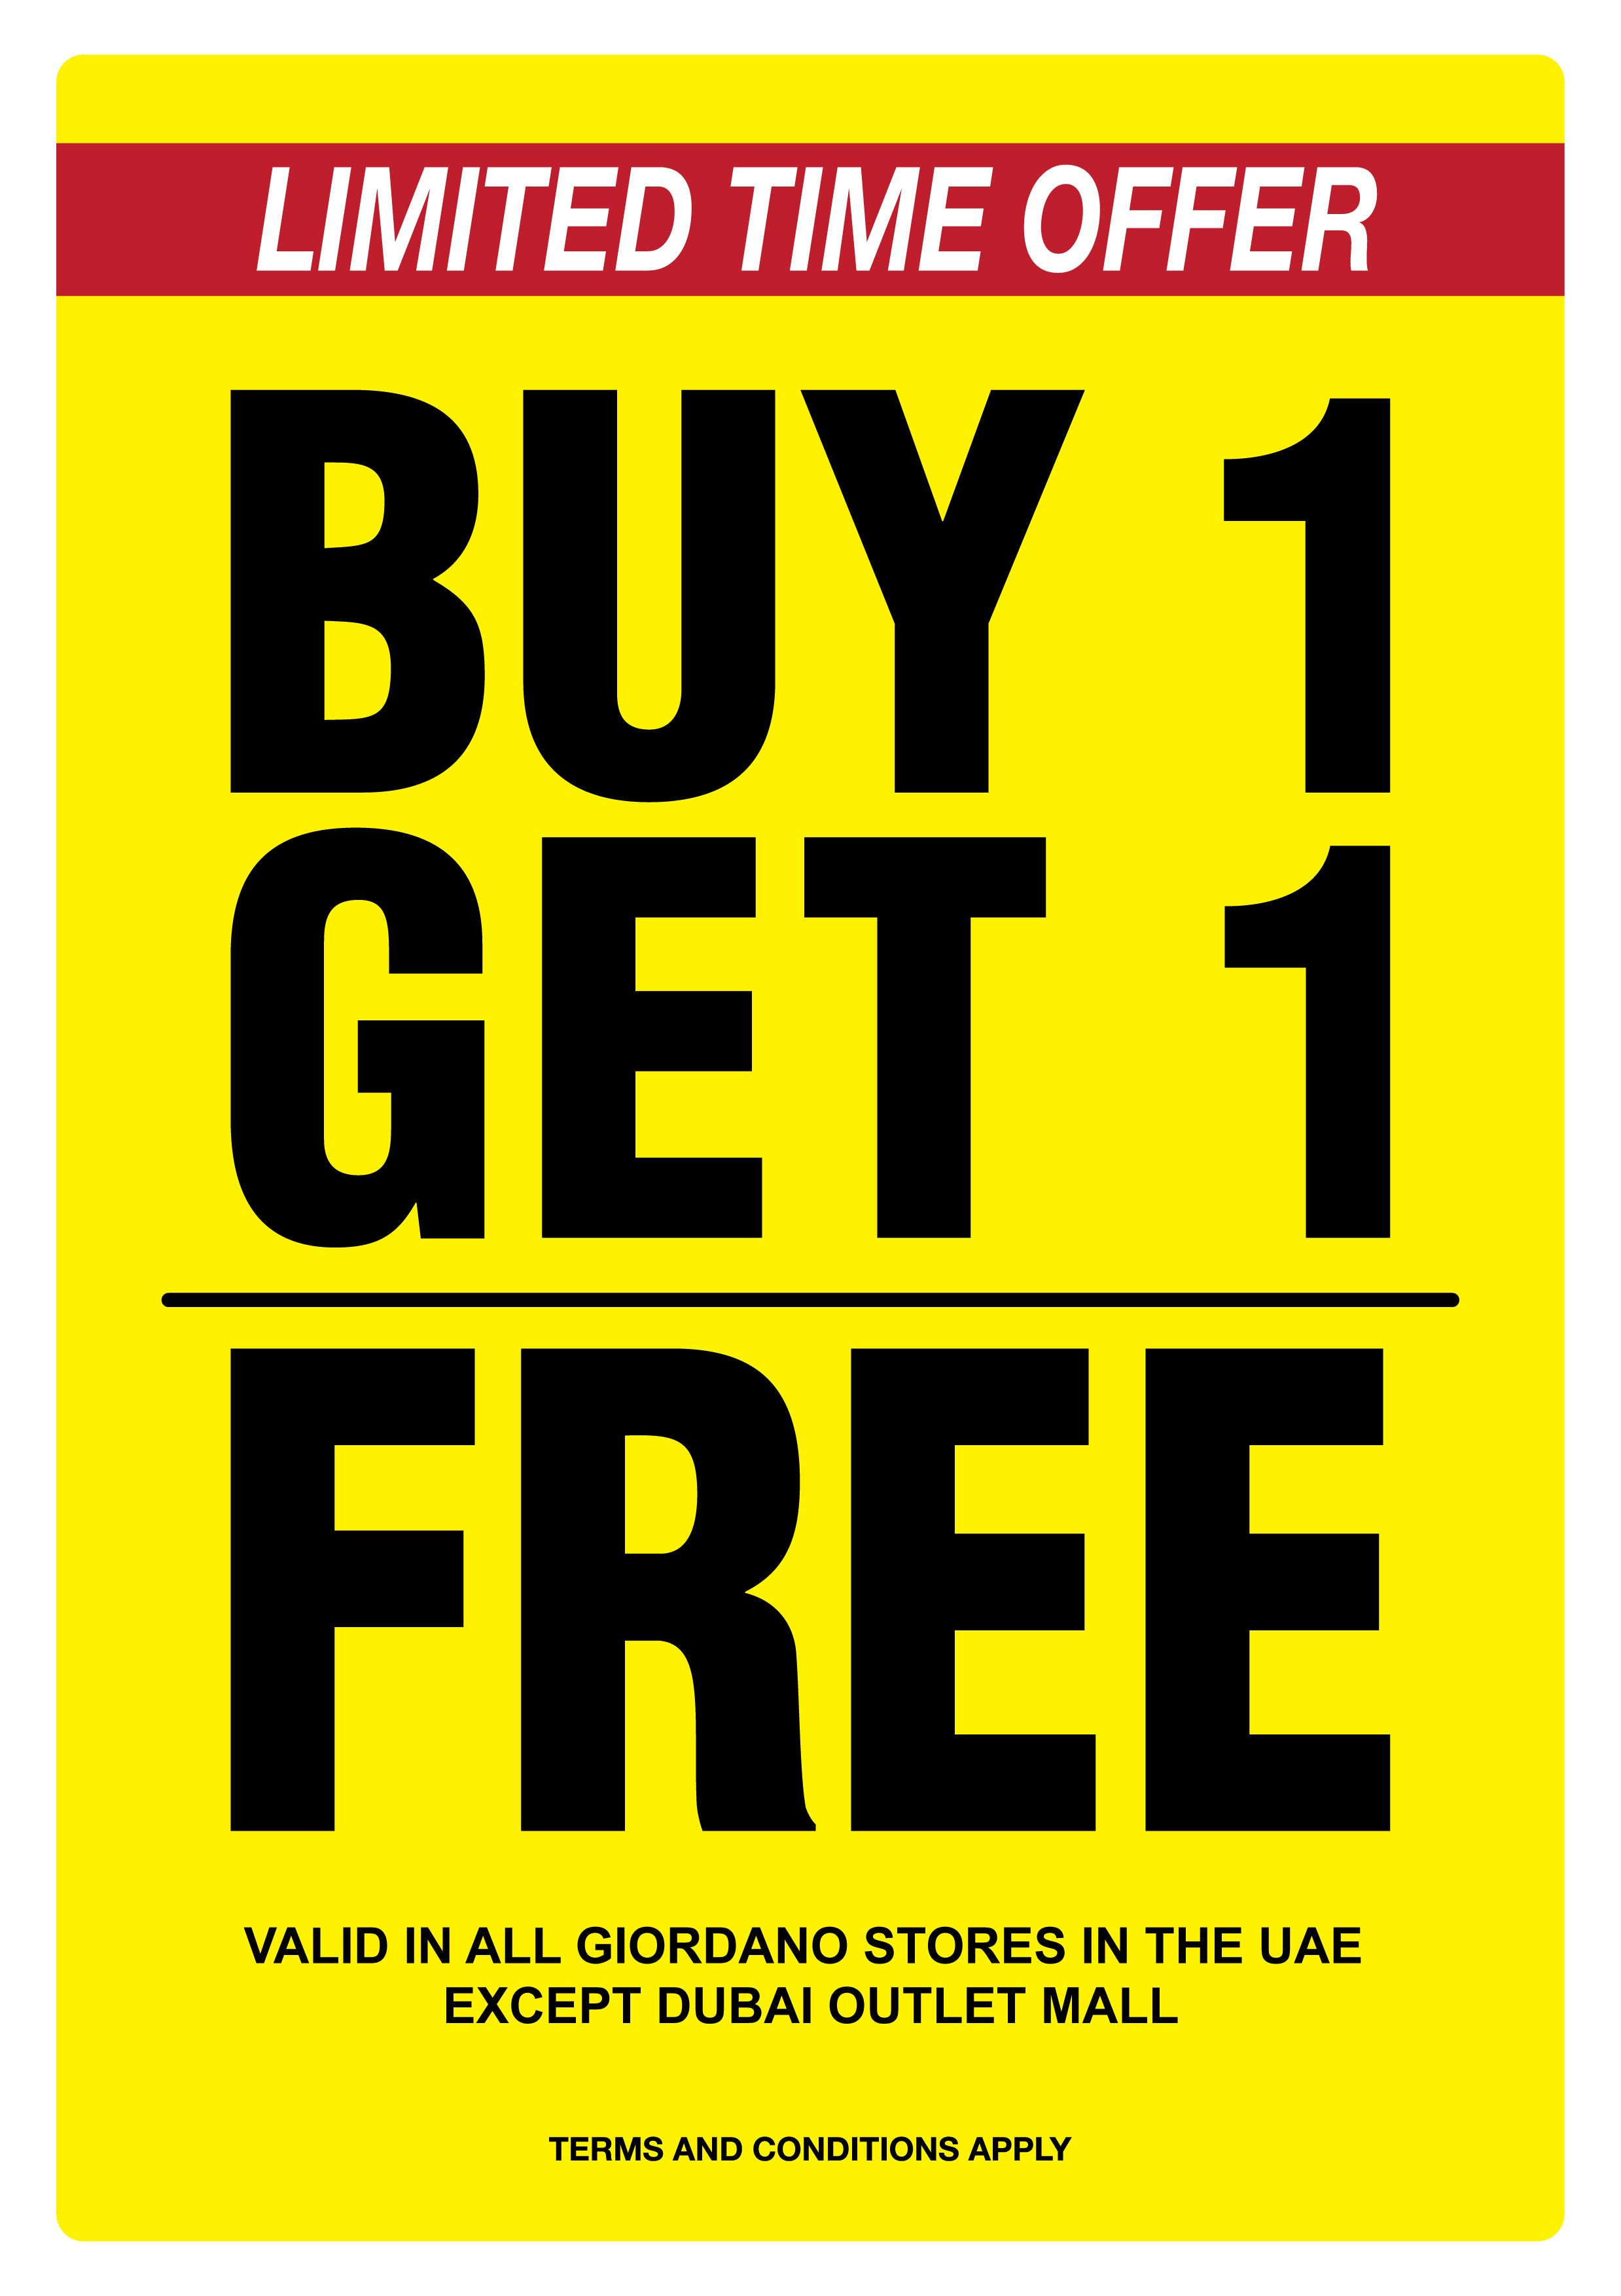 Team Giordano Hurry Come Avail Our Limited Time Buy 1 Get 1 Free Offer Only Valid In Uae Come Shop Now At Giordano Val Sale Design Outlet Mall How To Apply